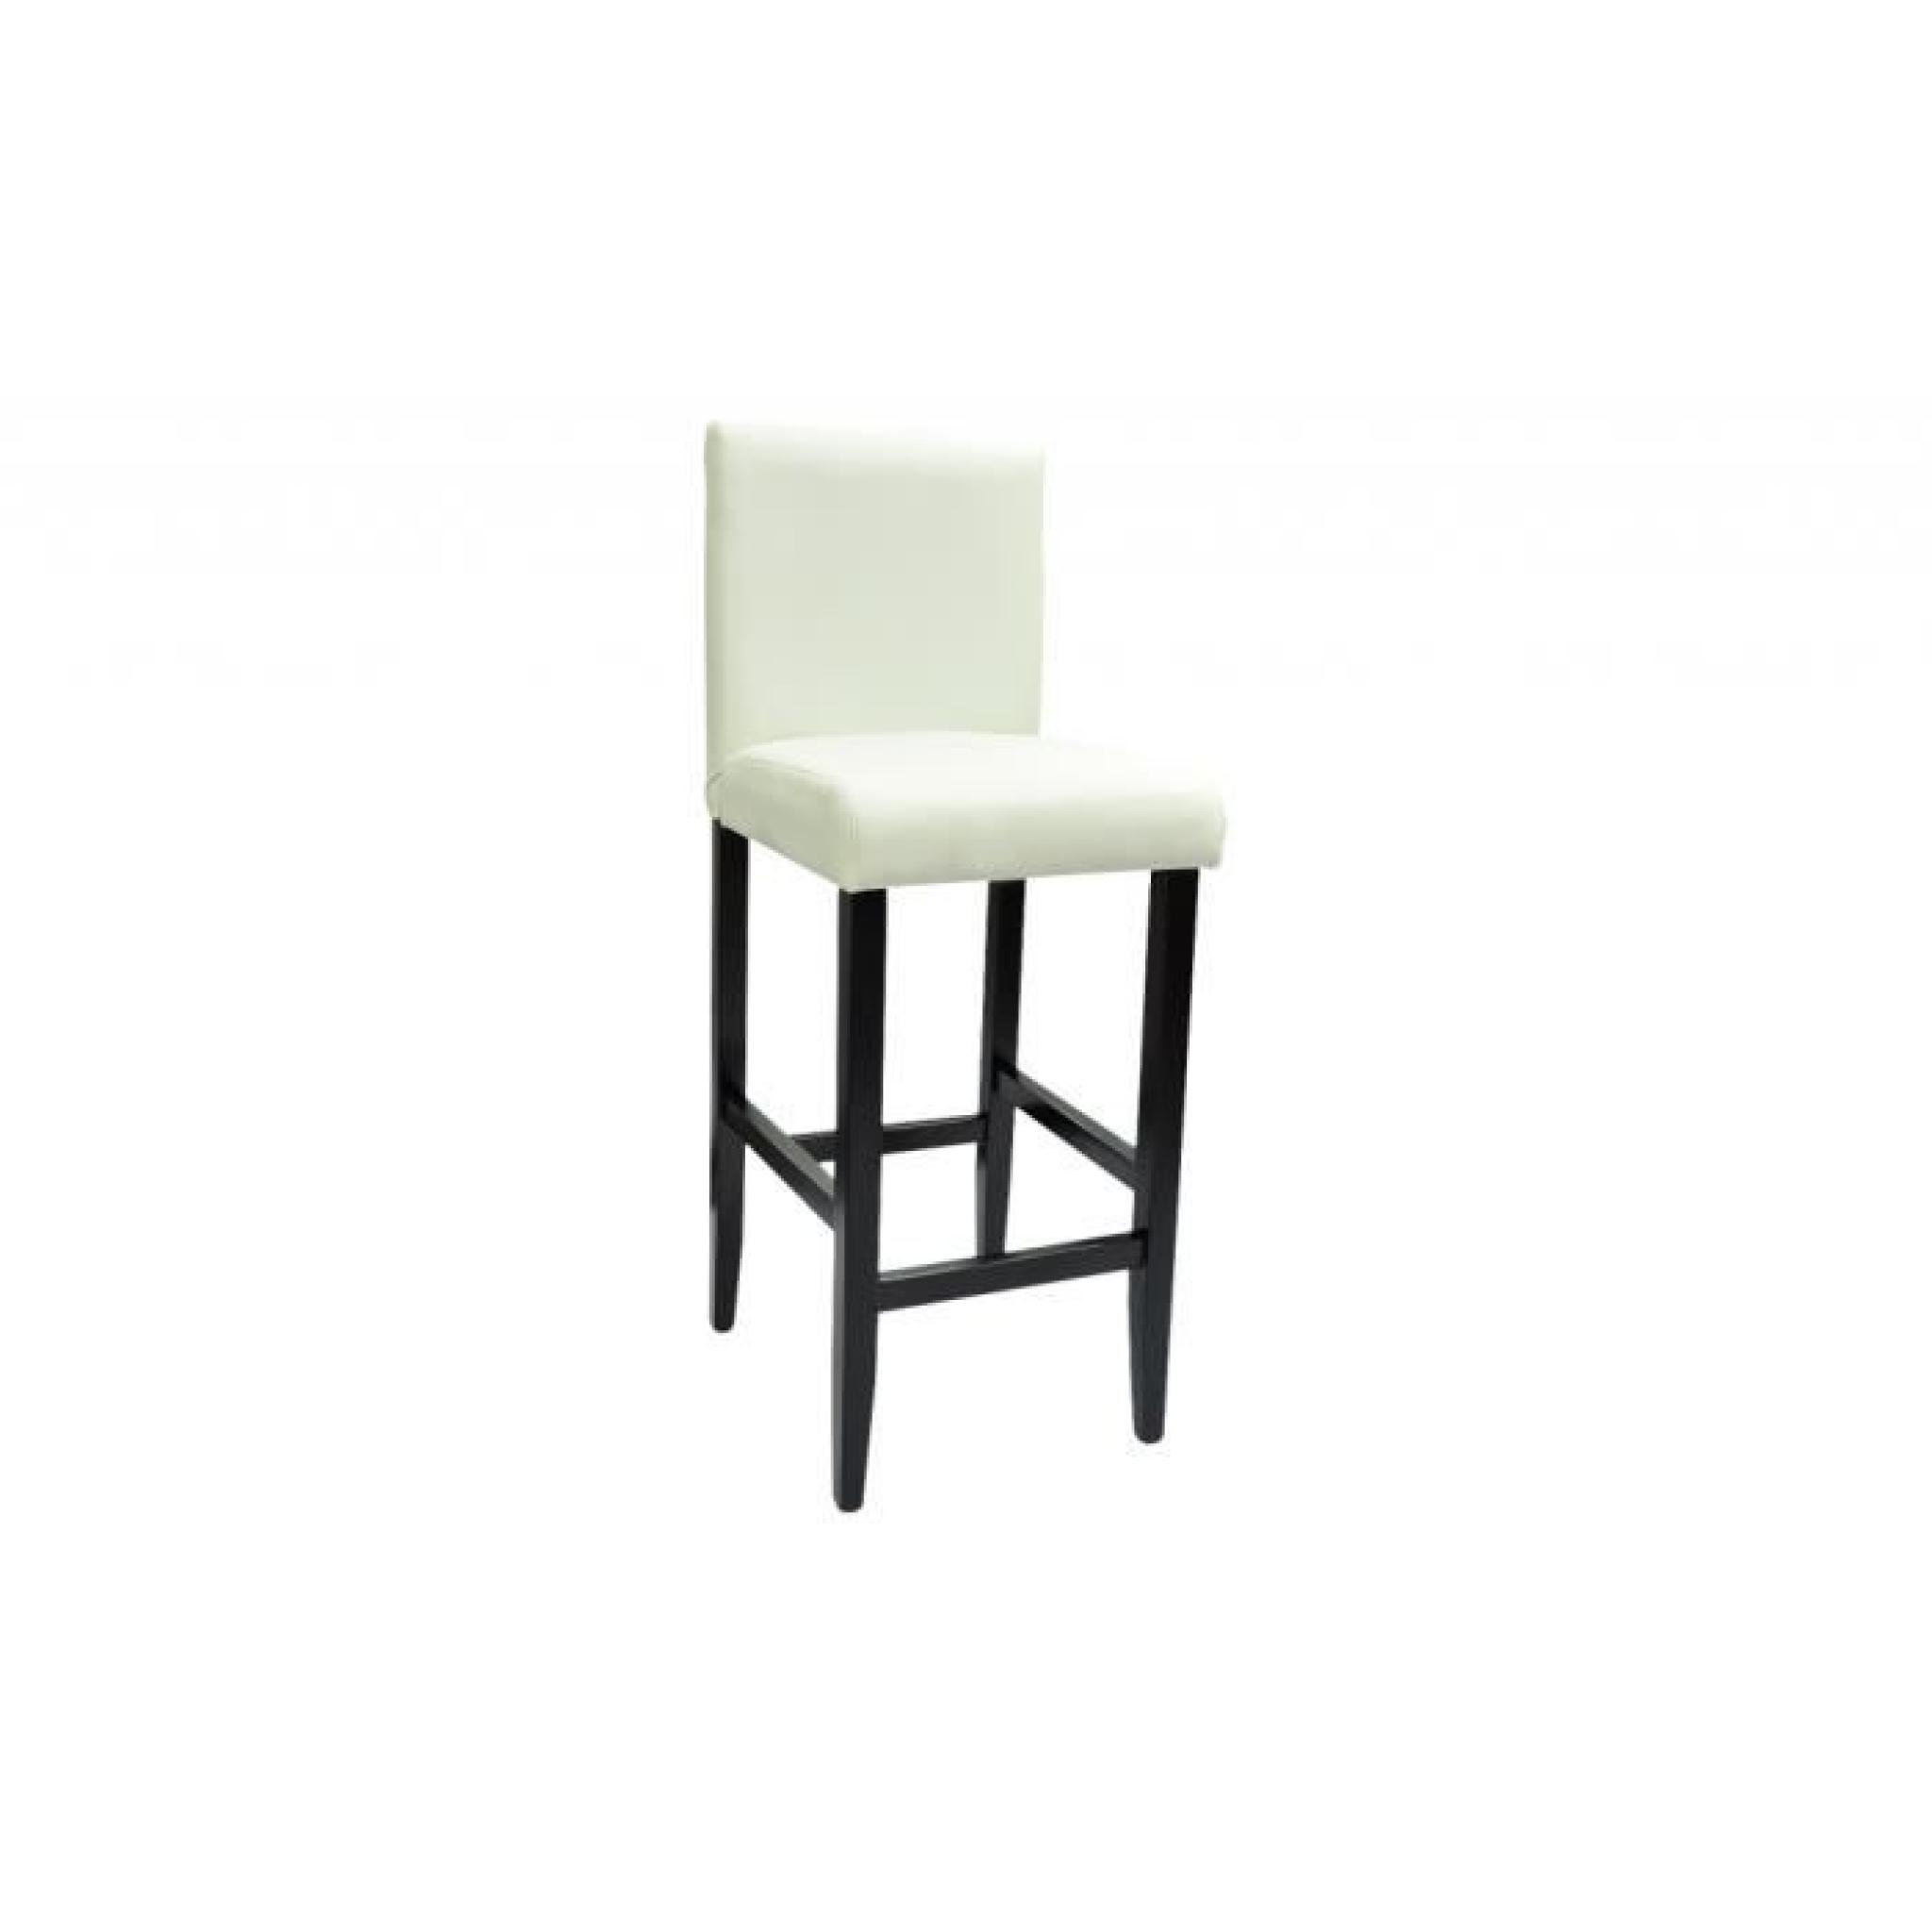 lot de 6 tabourets de bar chicago blanc achat vente tabouret de bar pas cher couleur et. Black Bedroom Furniture Sets. Home Design Ideas